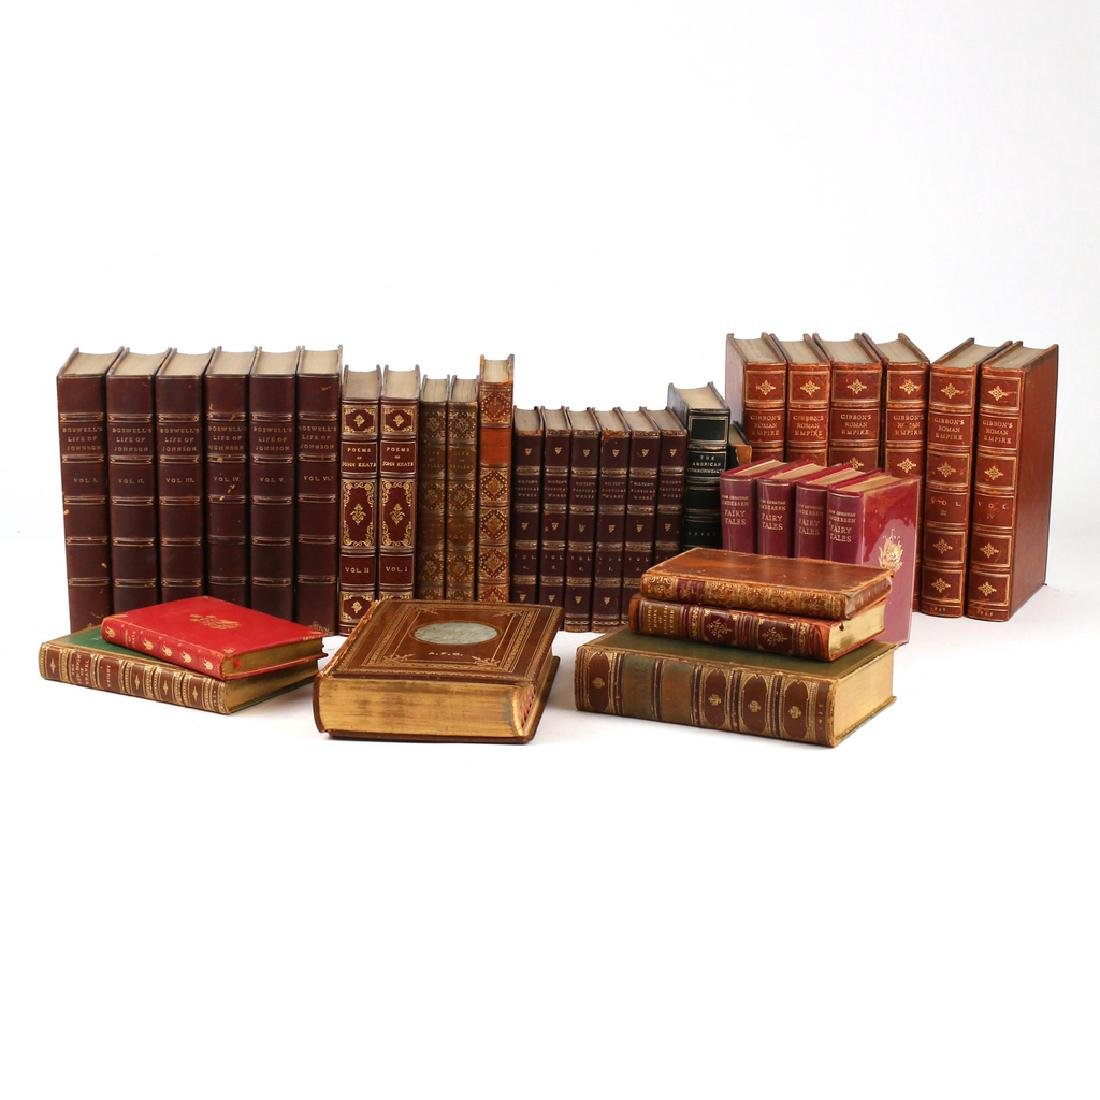 (35vol) MISC. LEATHER-BOUND BOOKS